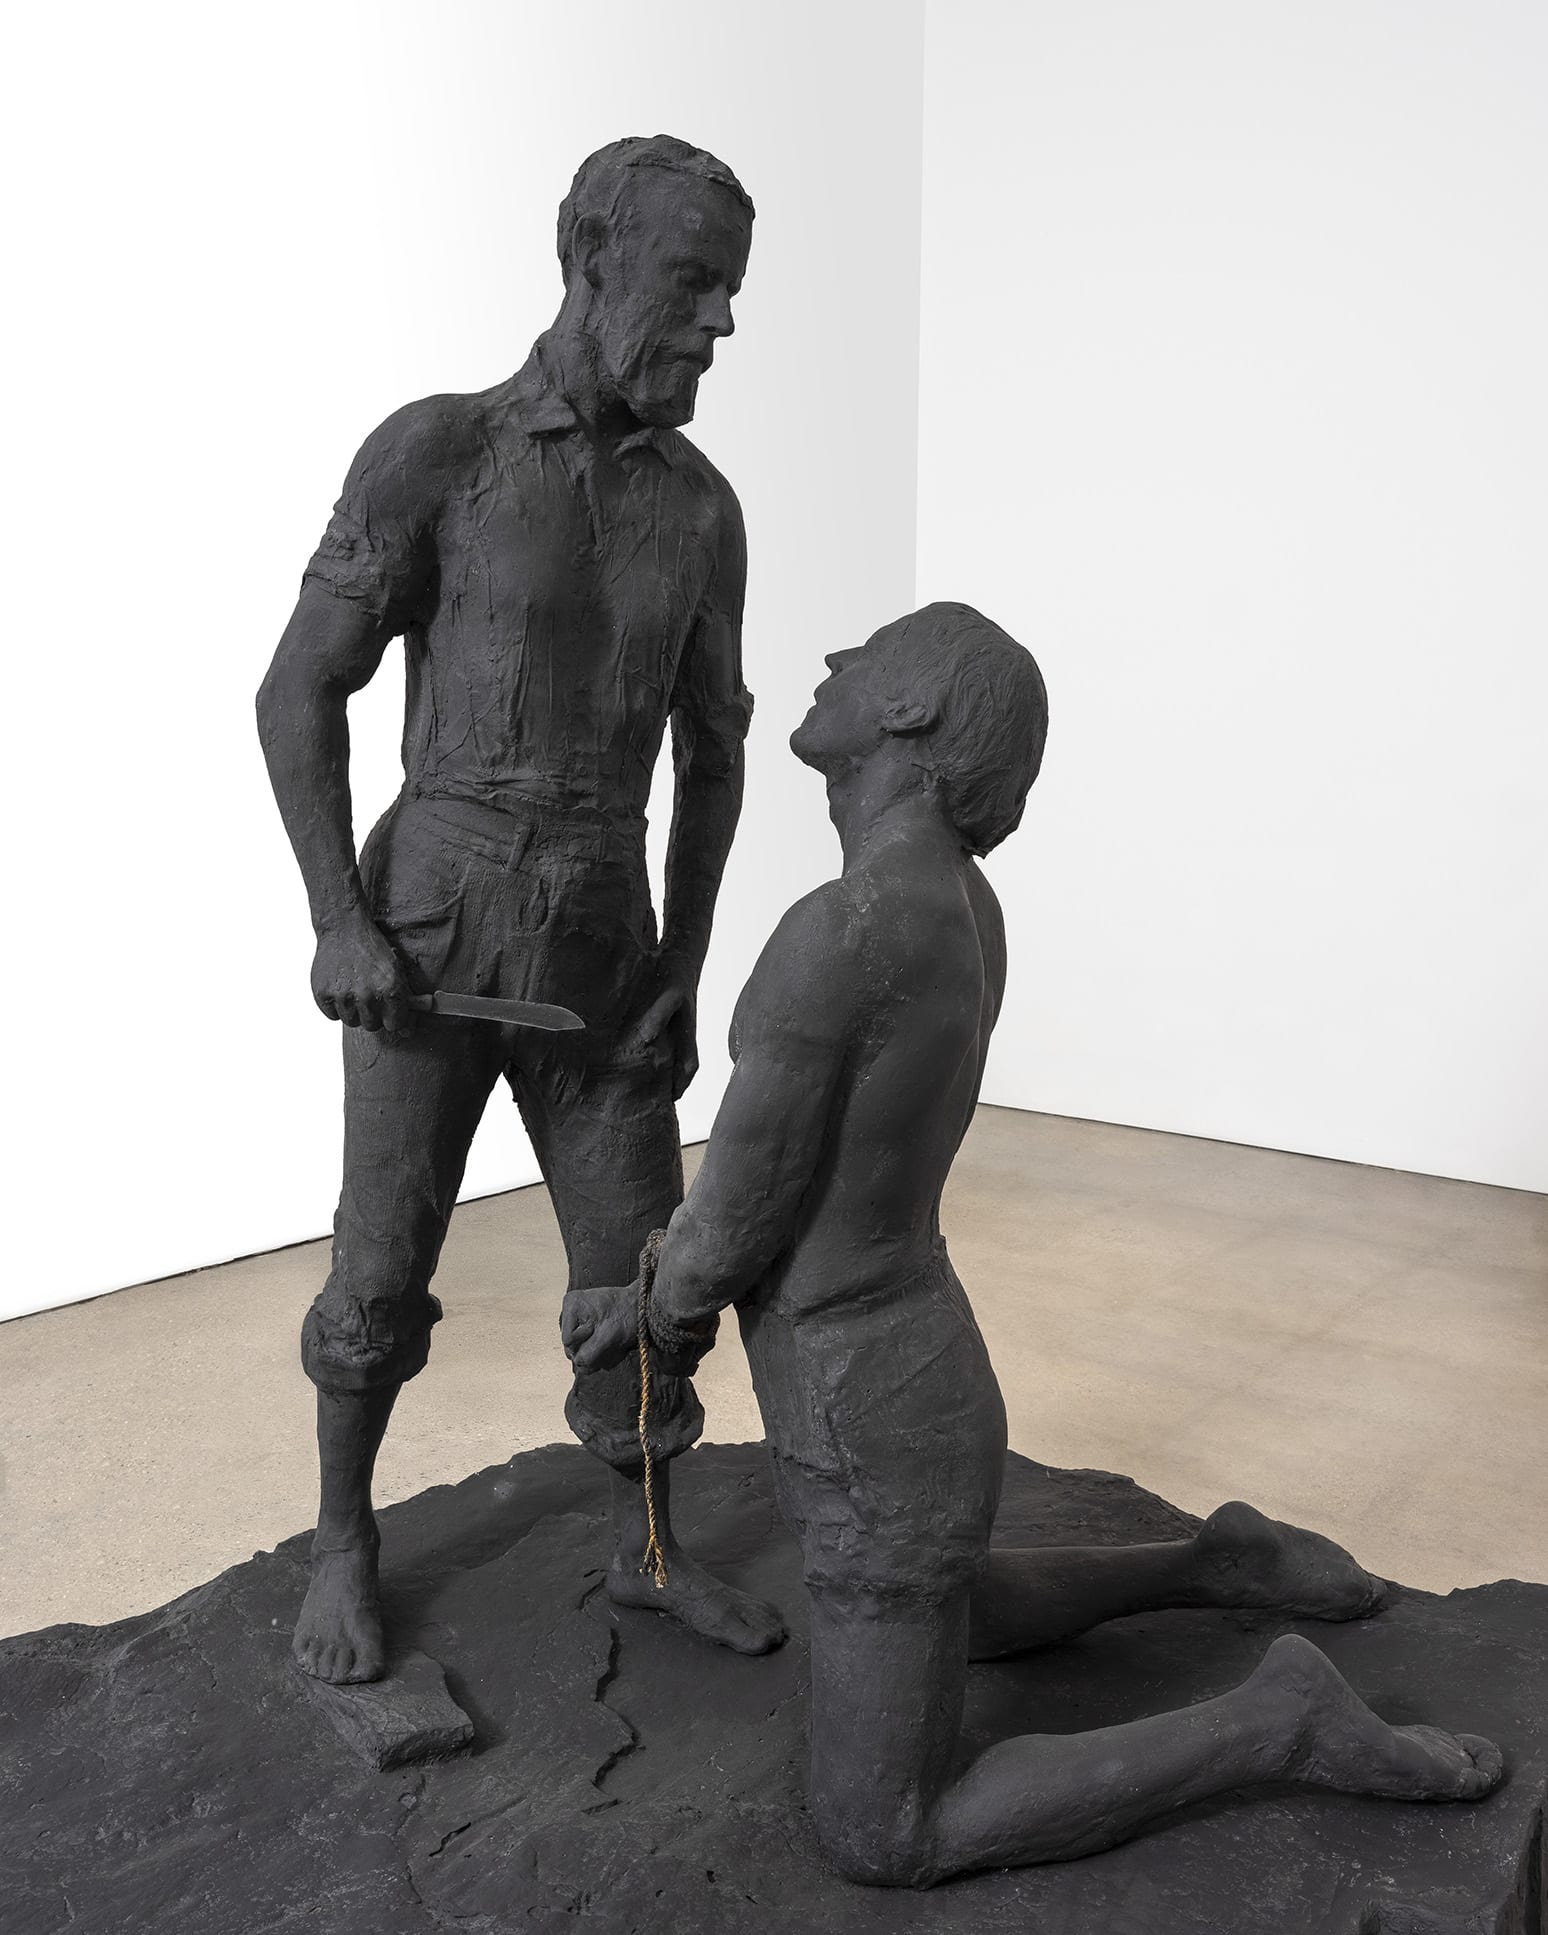 The Jewish Museum Presents George Segal's Monumental Sculpture Abraham and Isaac